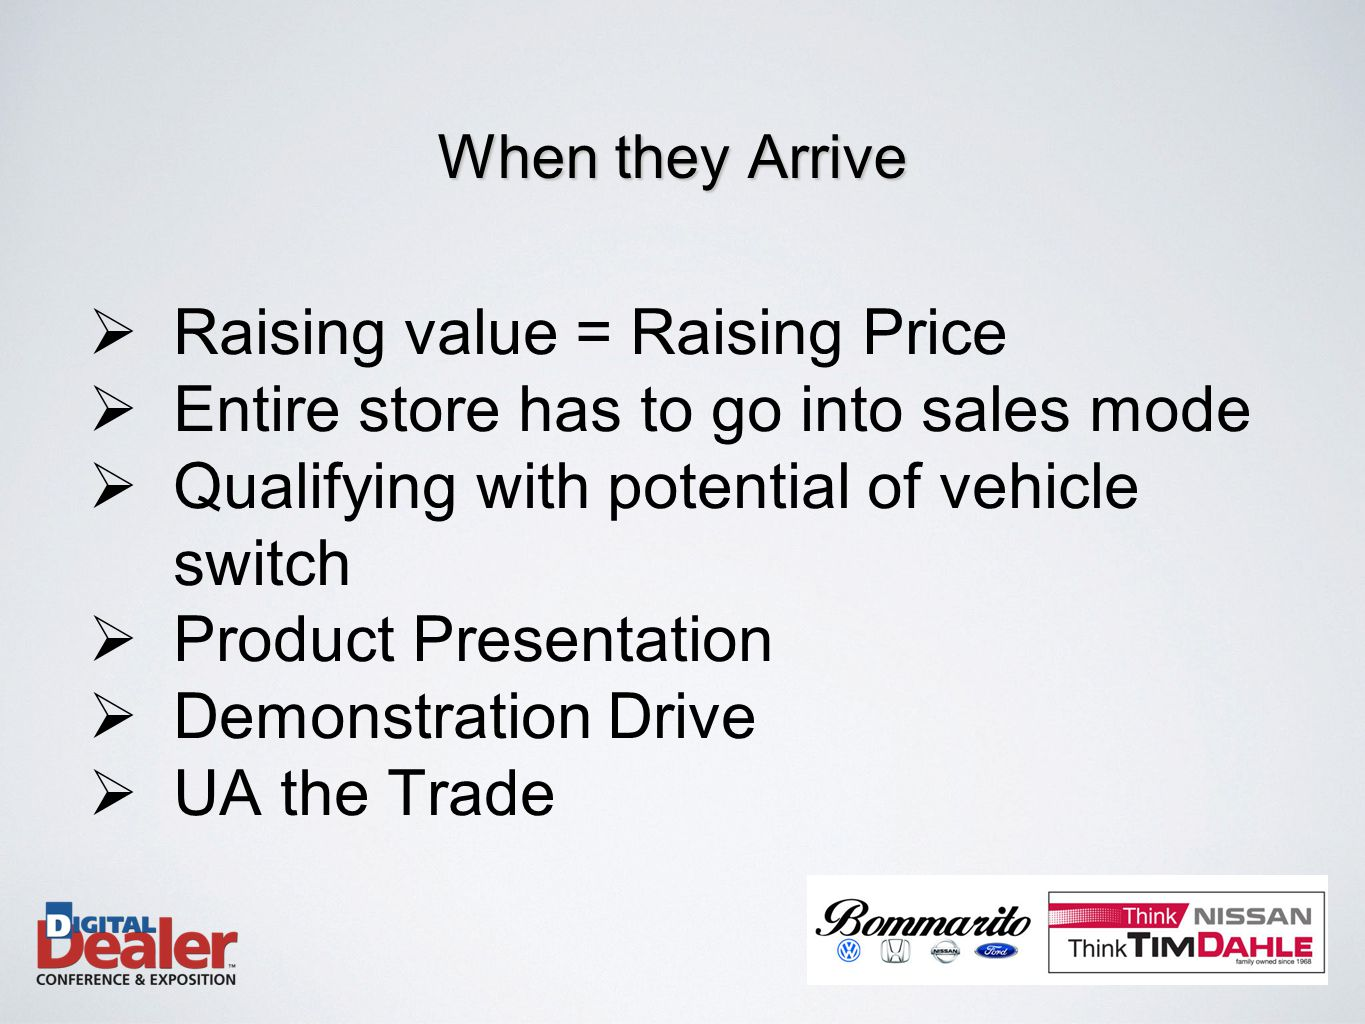  Raising value = Raising Price  Entire store has to go into sales mode  Qualifying with potential of vehicle switch  Product Presentation  Demonstration Drive  UA the Trade When they Arrive